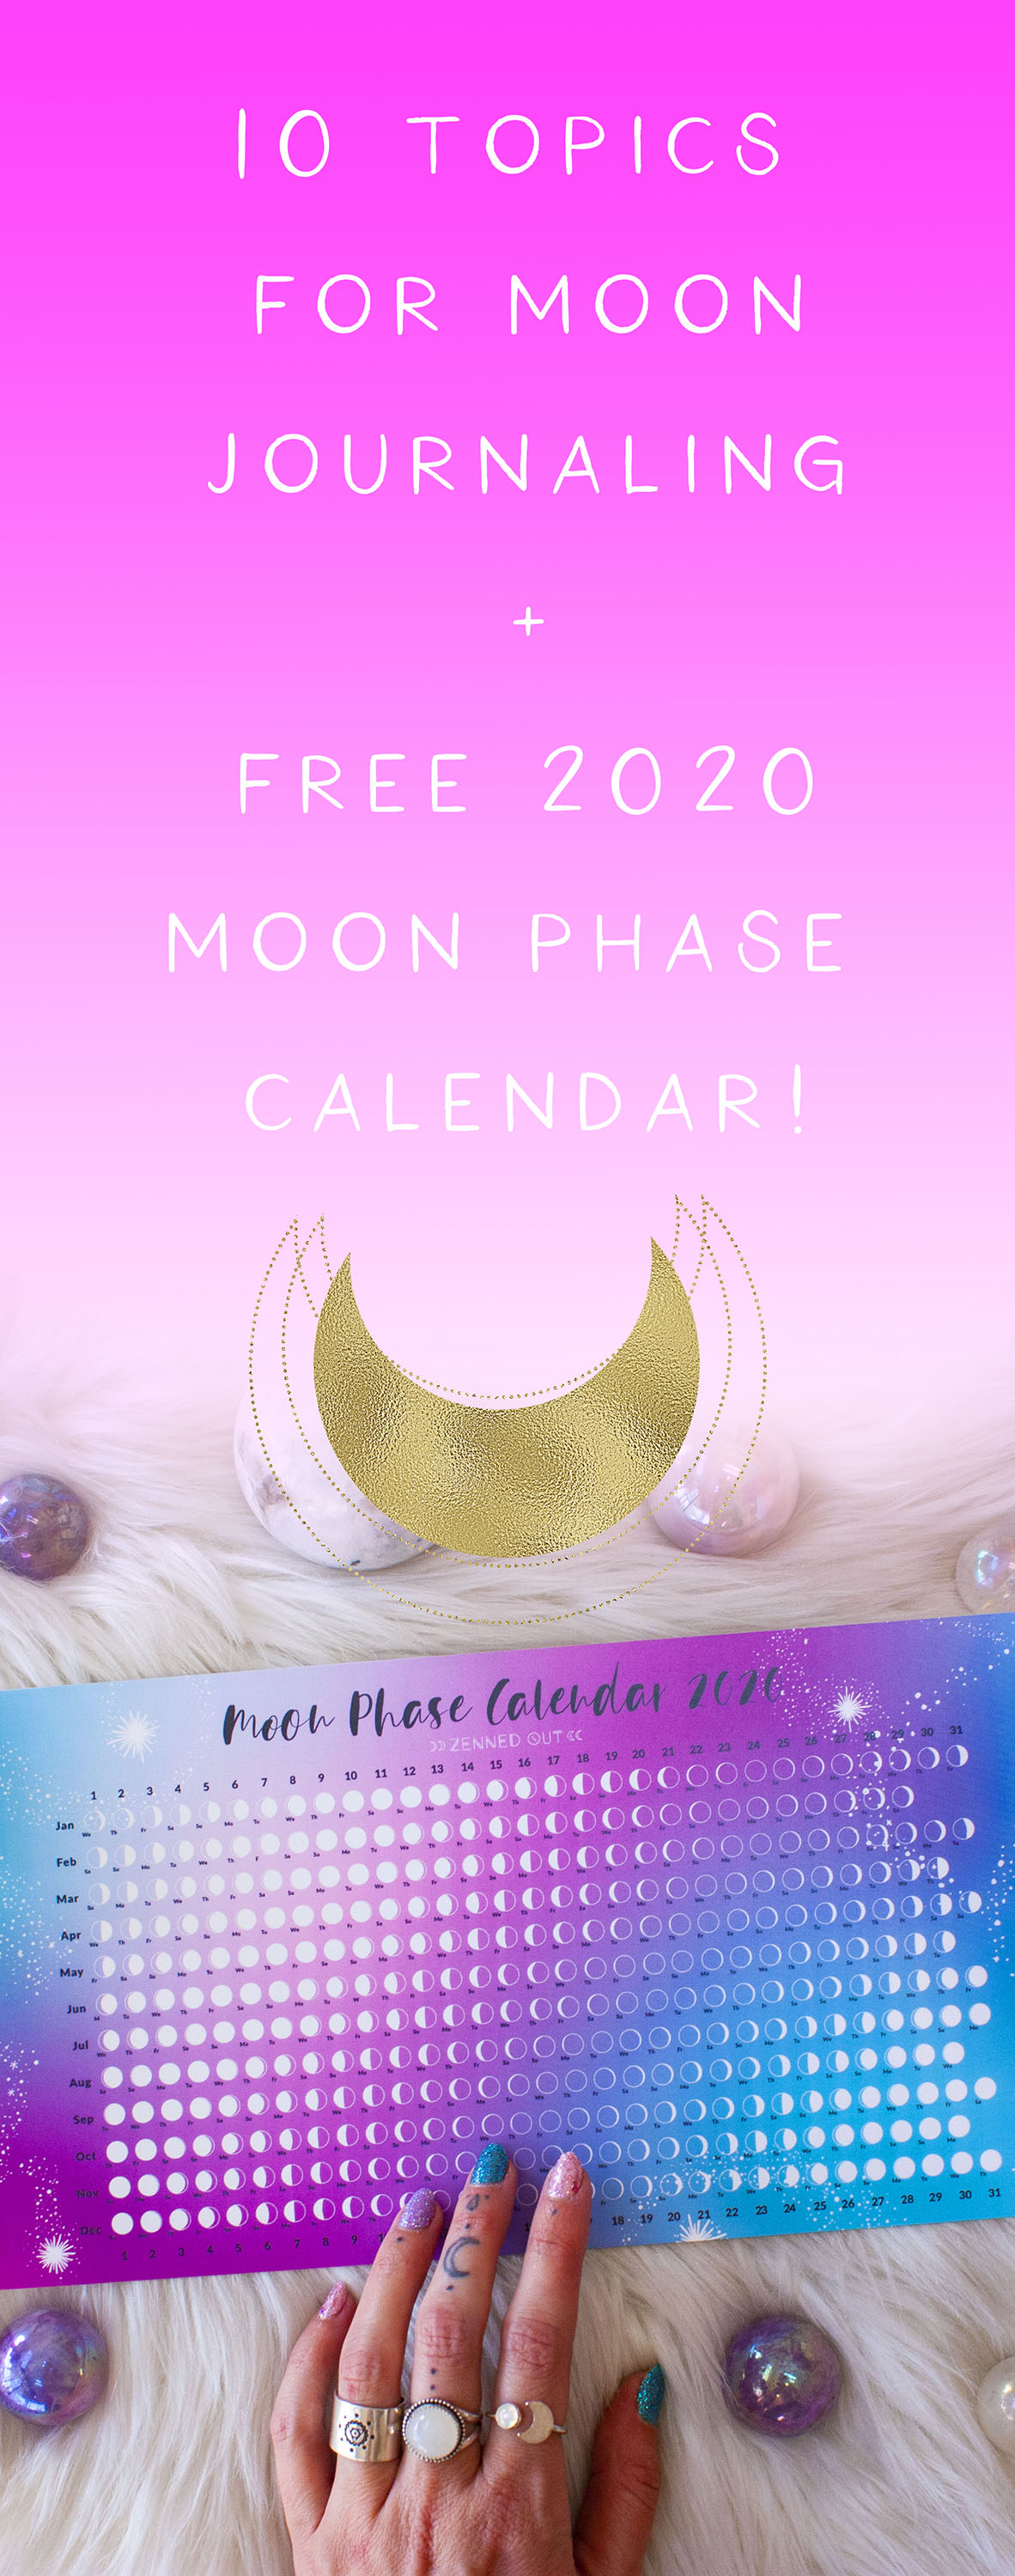 free-2020-moon-phase-calendar-journaling-with-the-moon